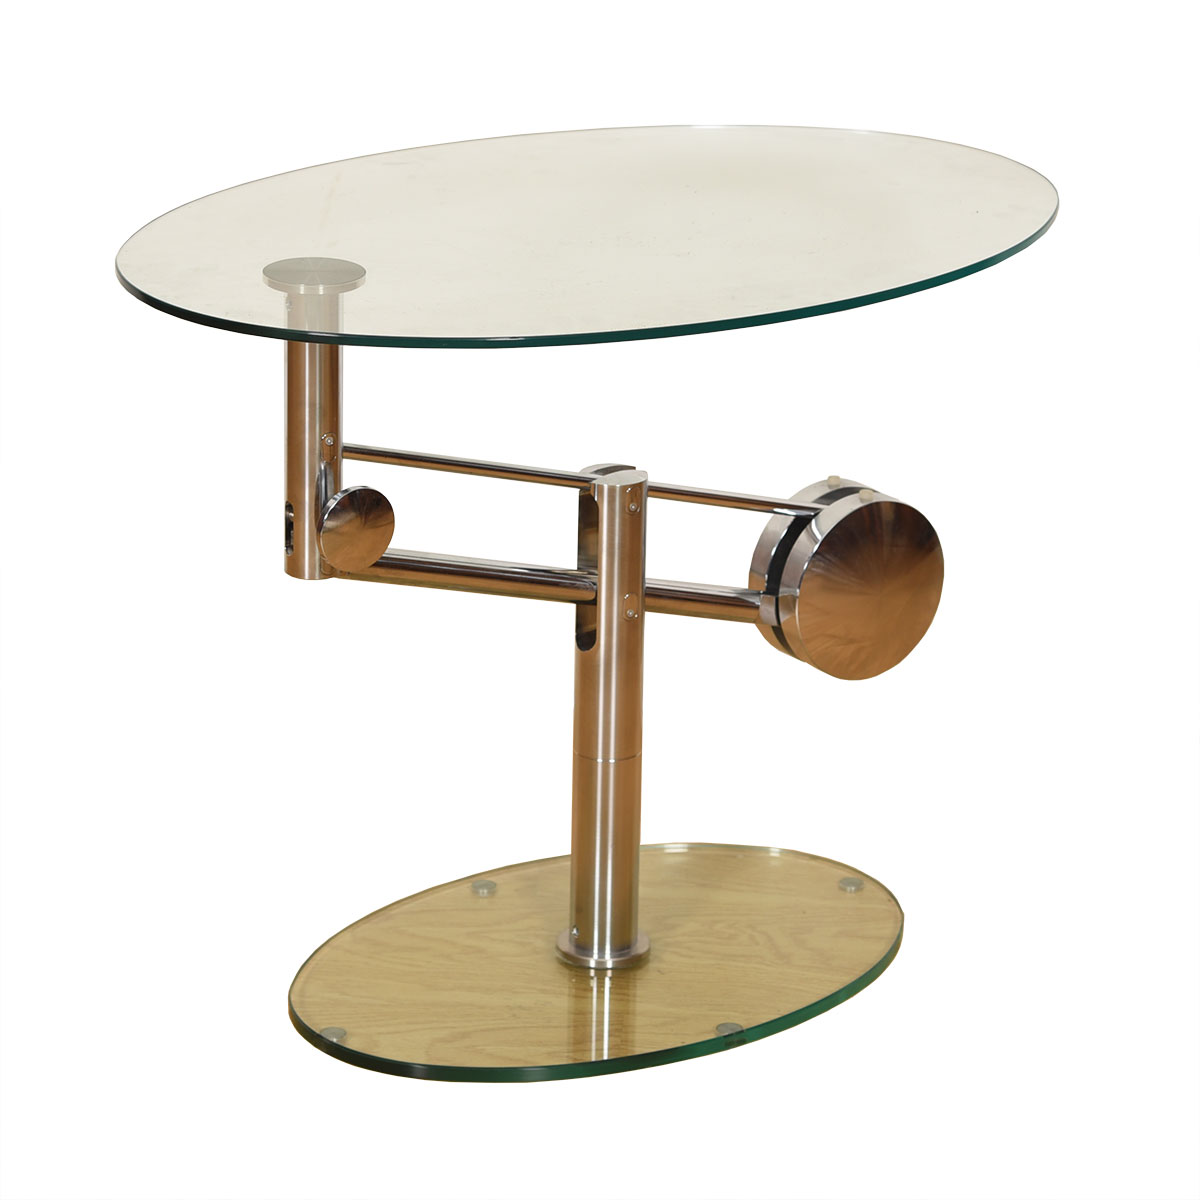 Vintage Chrome + Glass Oval Adjustable Height Coffee / Accent Table